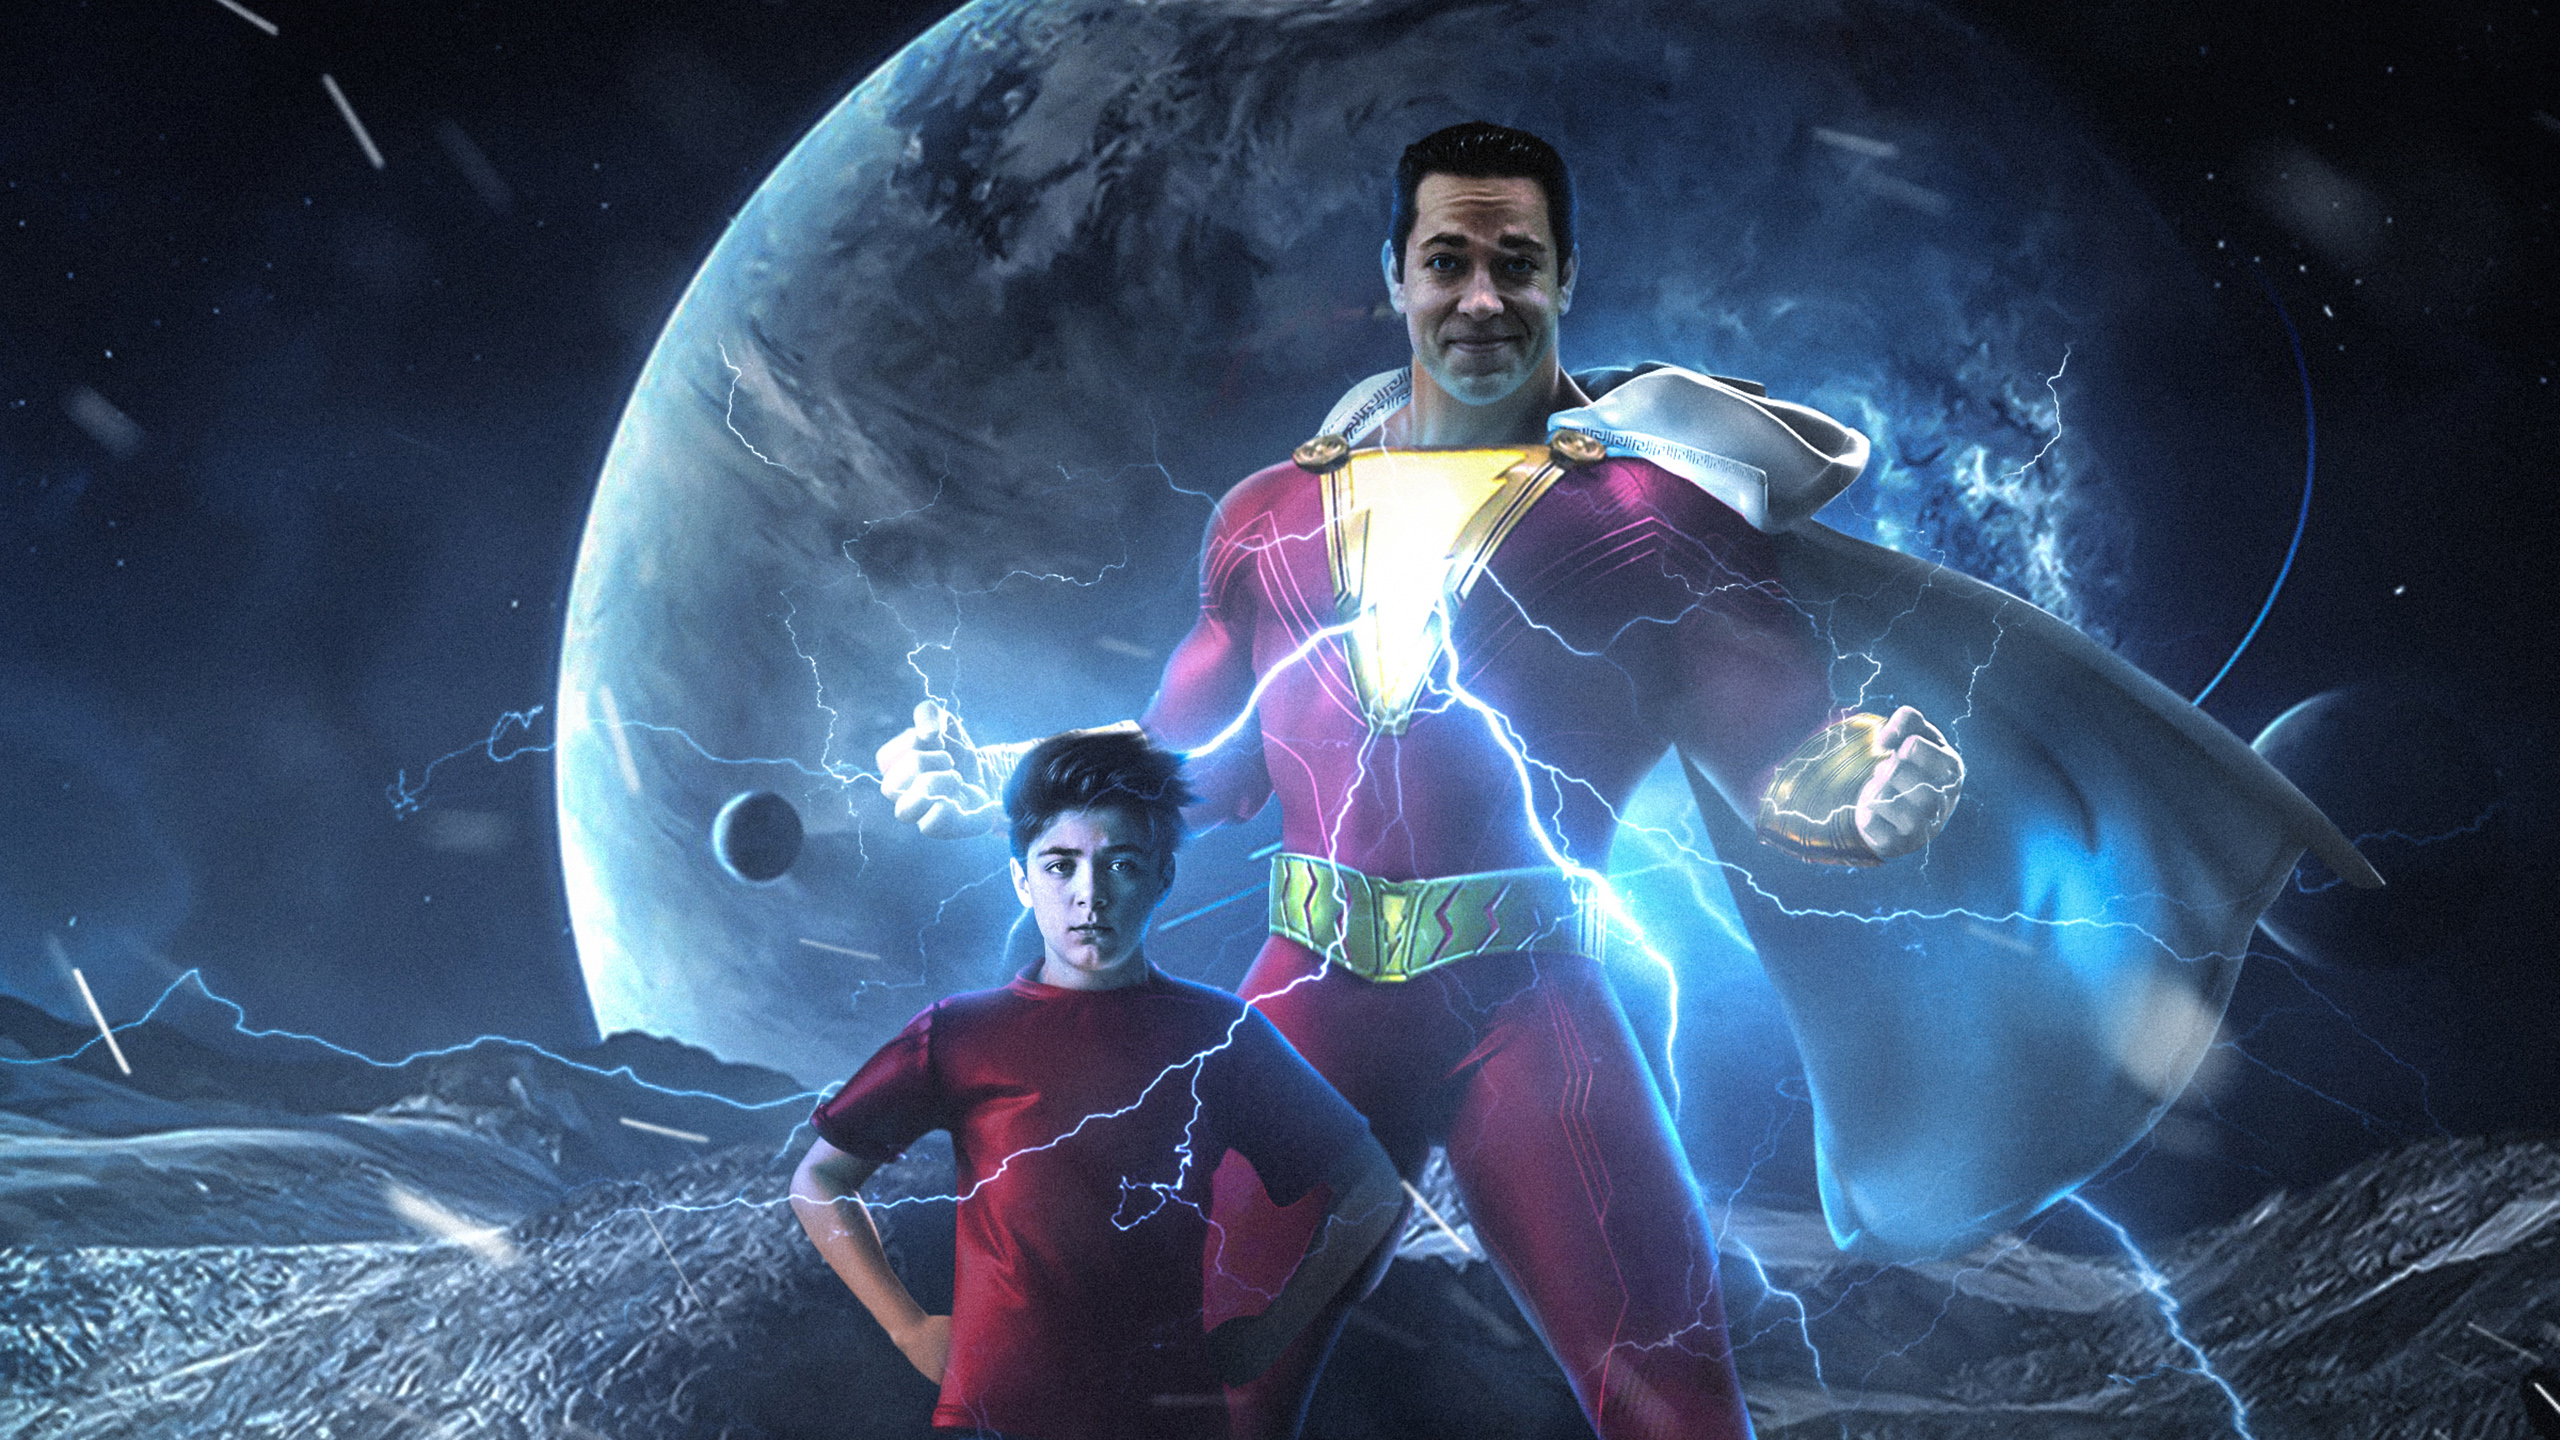 Shazam Movie Wallpapers Hd Wallpapers